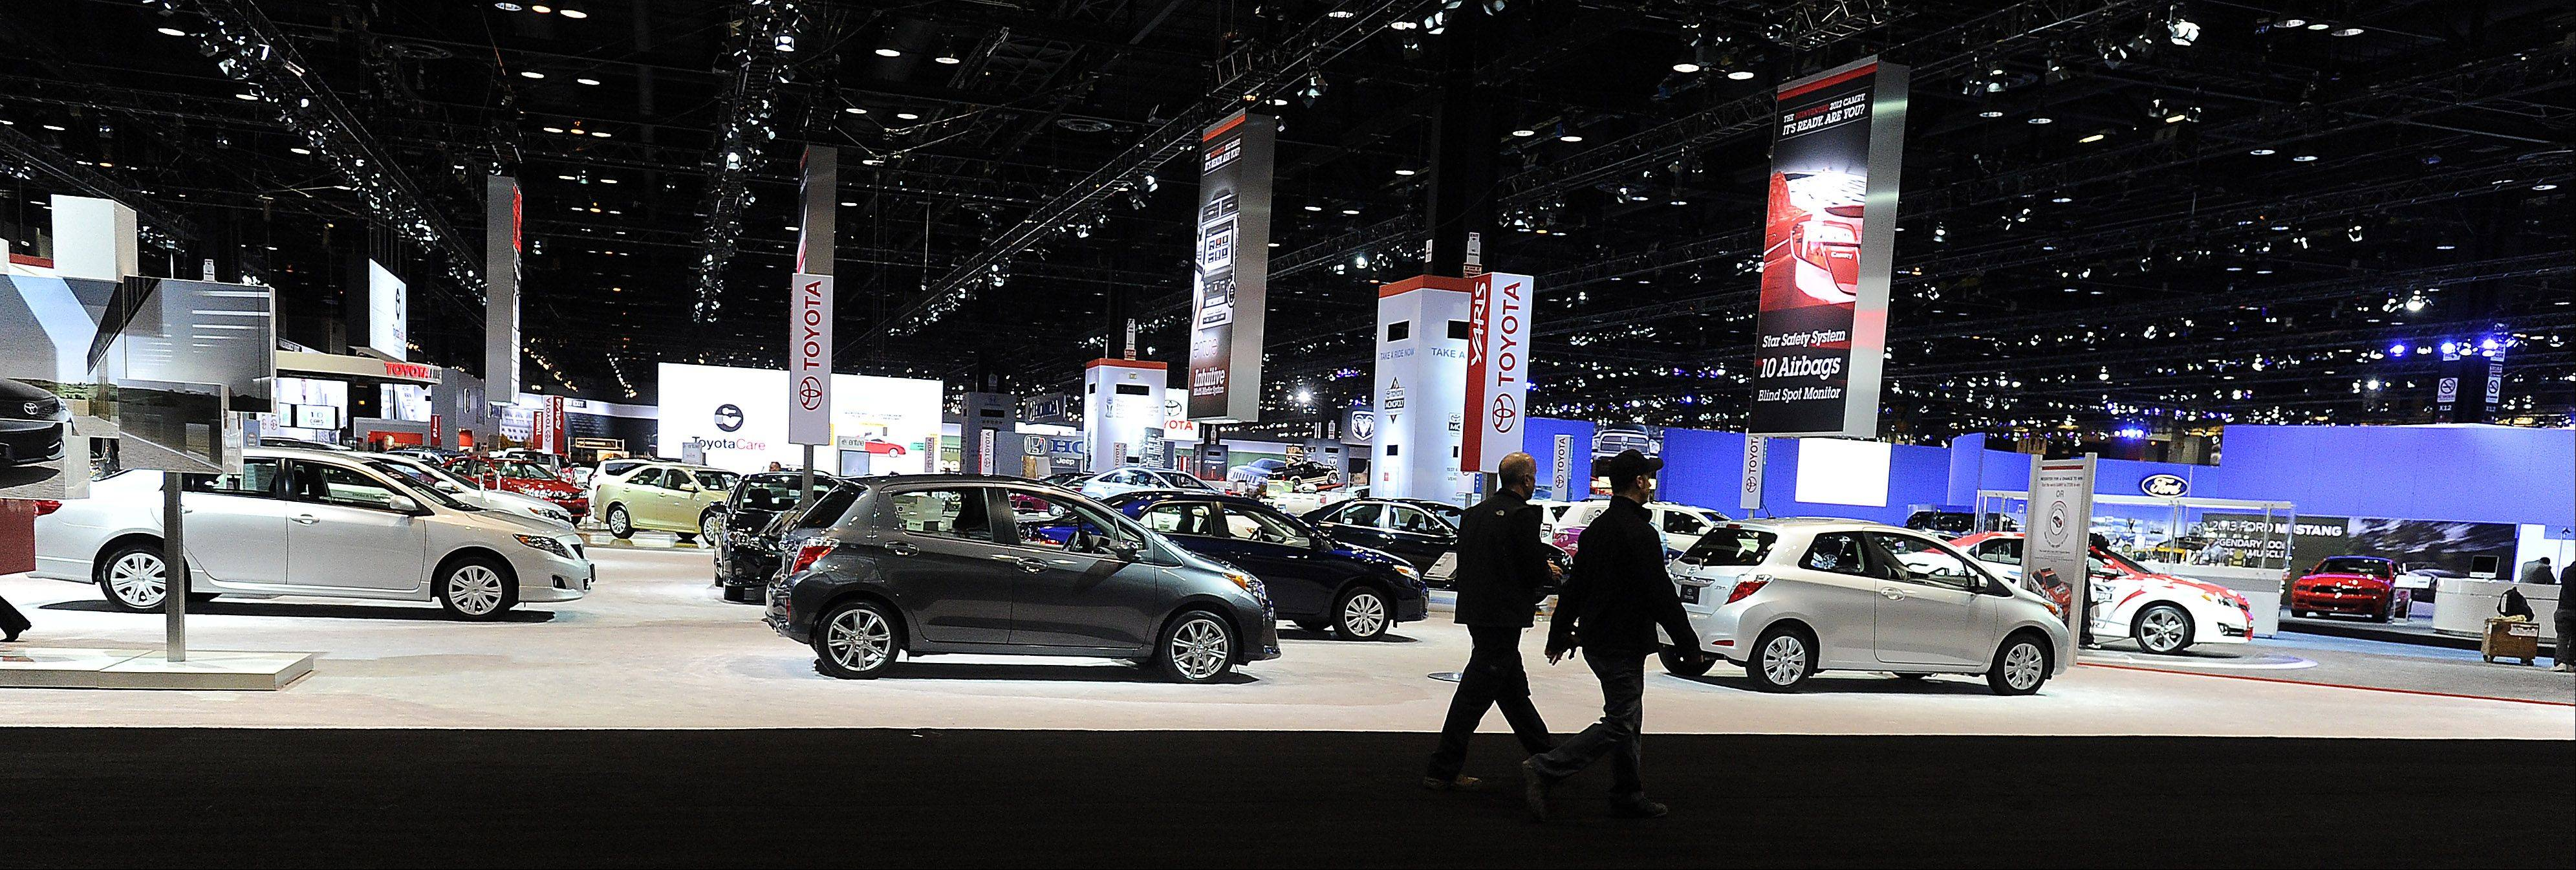 The 2012 Chicago Auto Show opens this Friday in Chicago.